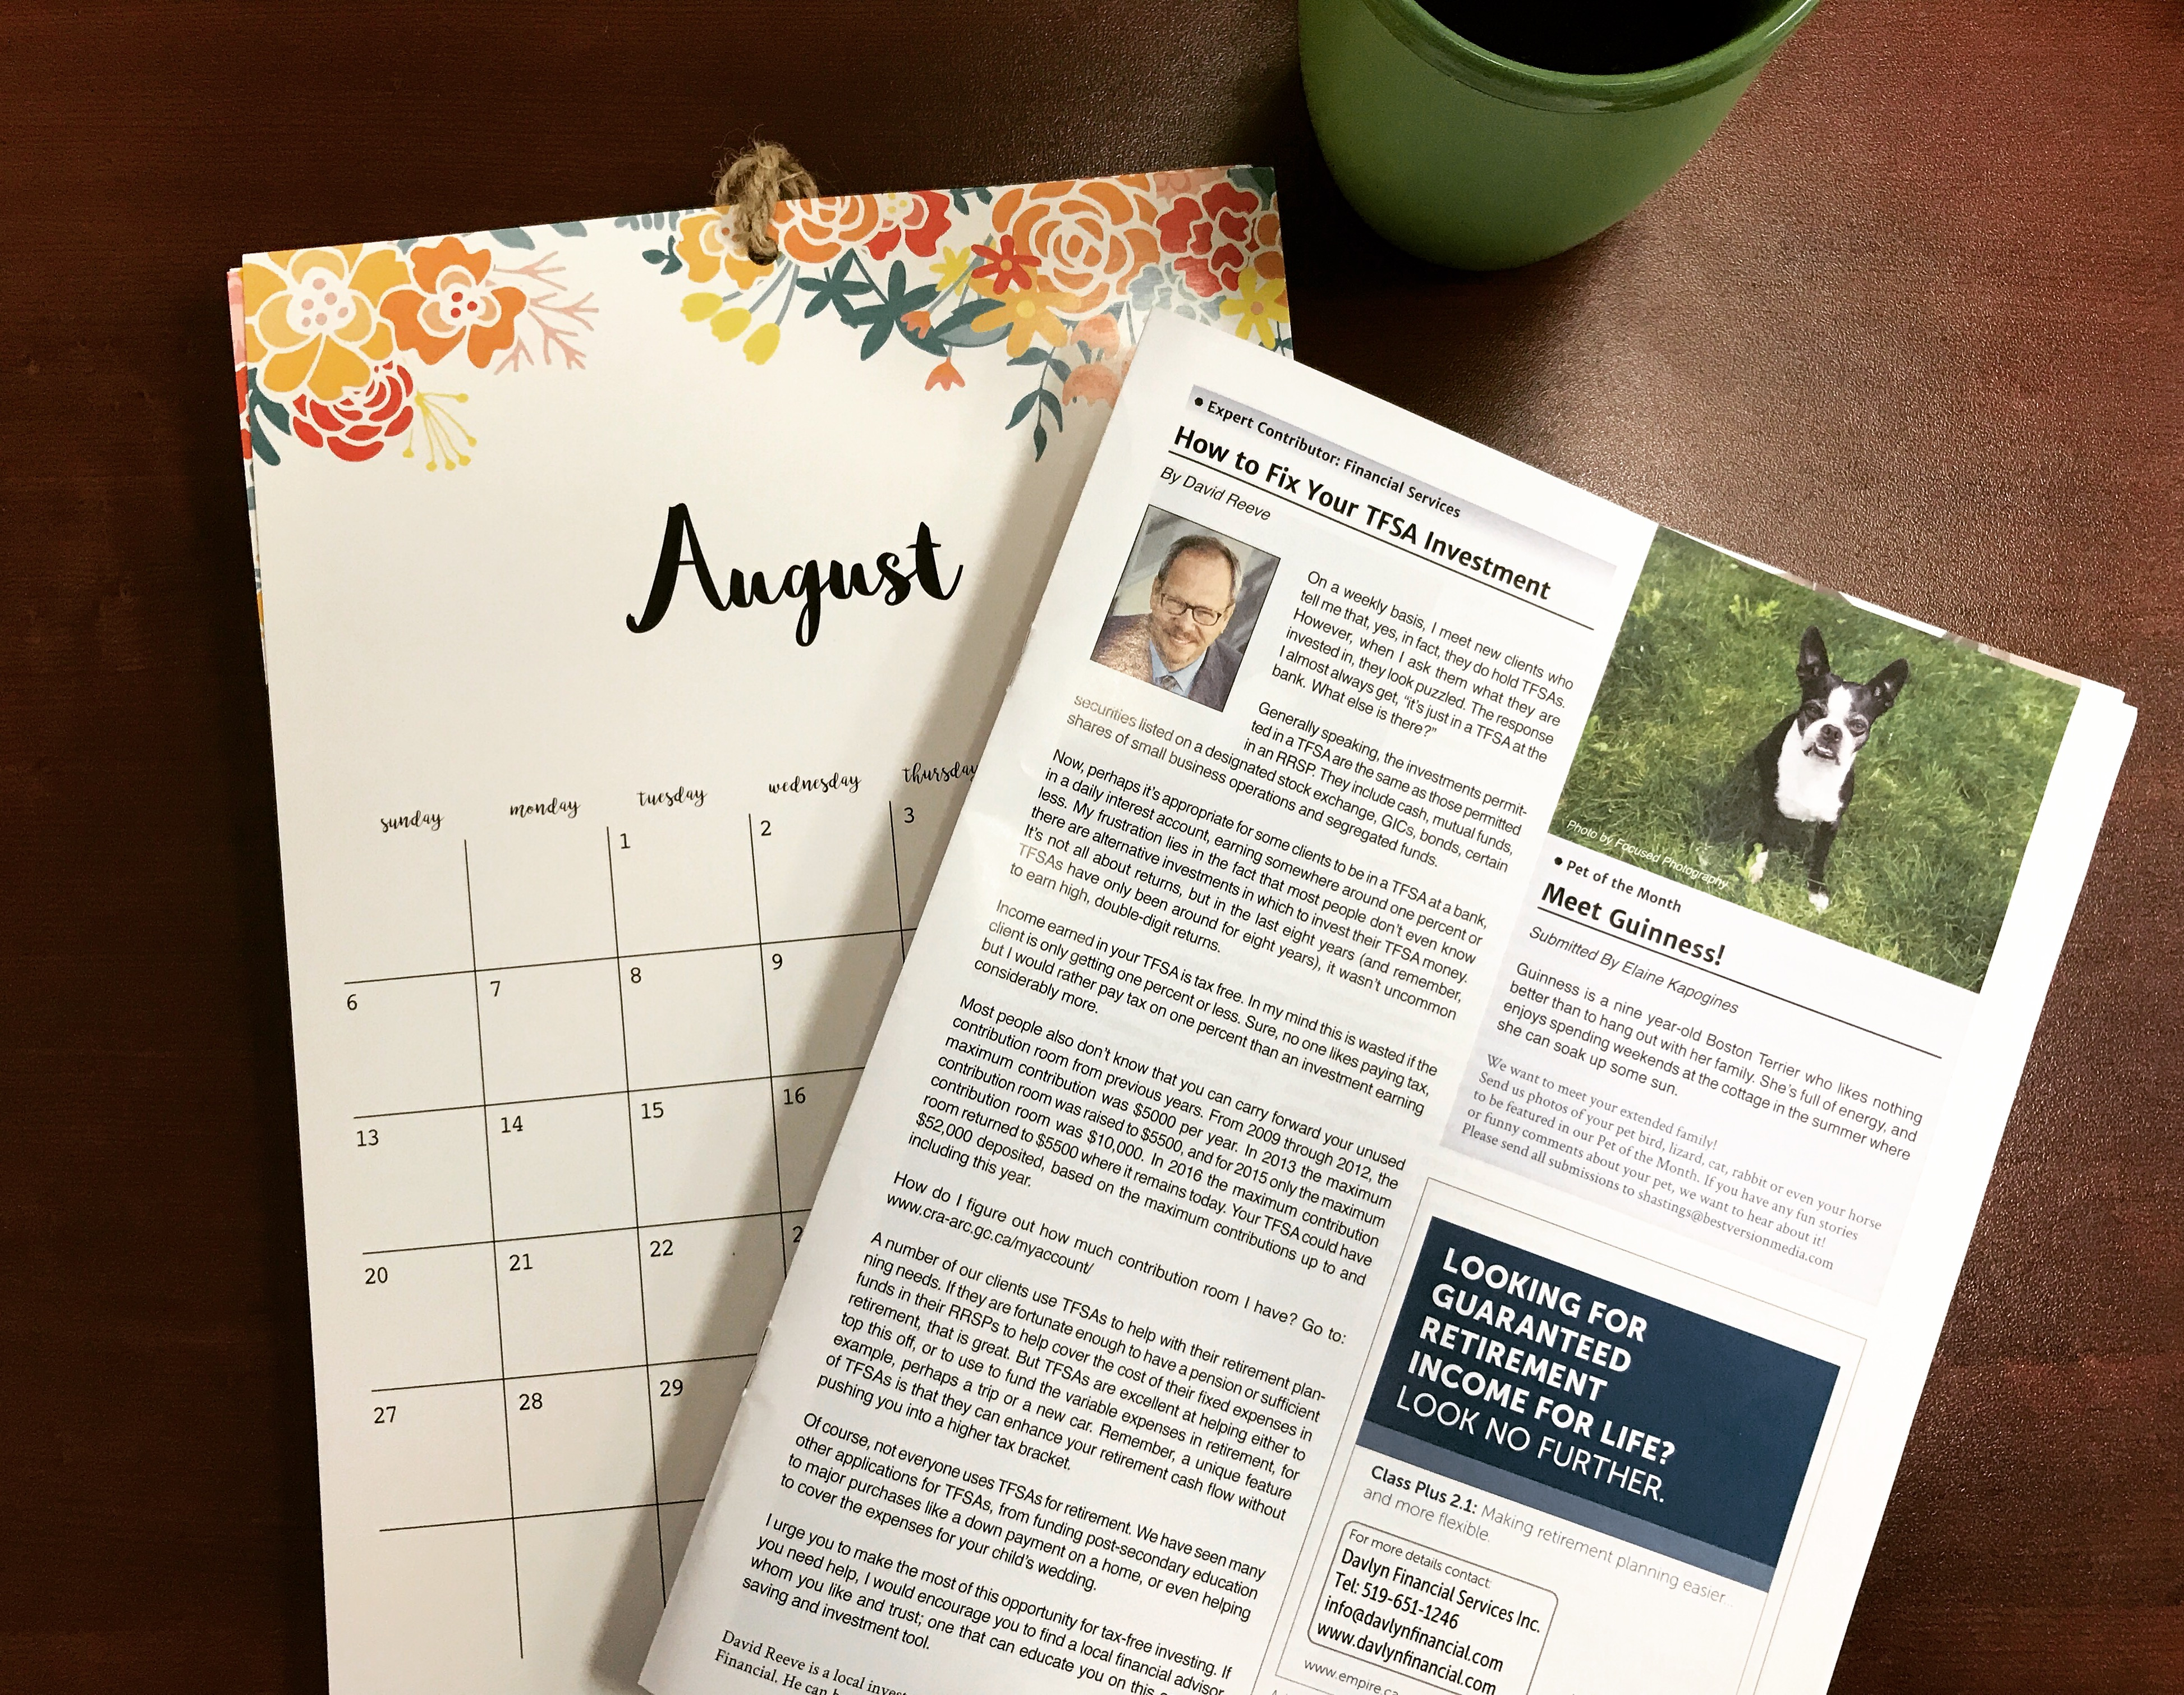 Davlyn Financial in Hespeler Magazine's August Edition: How